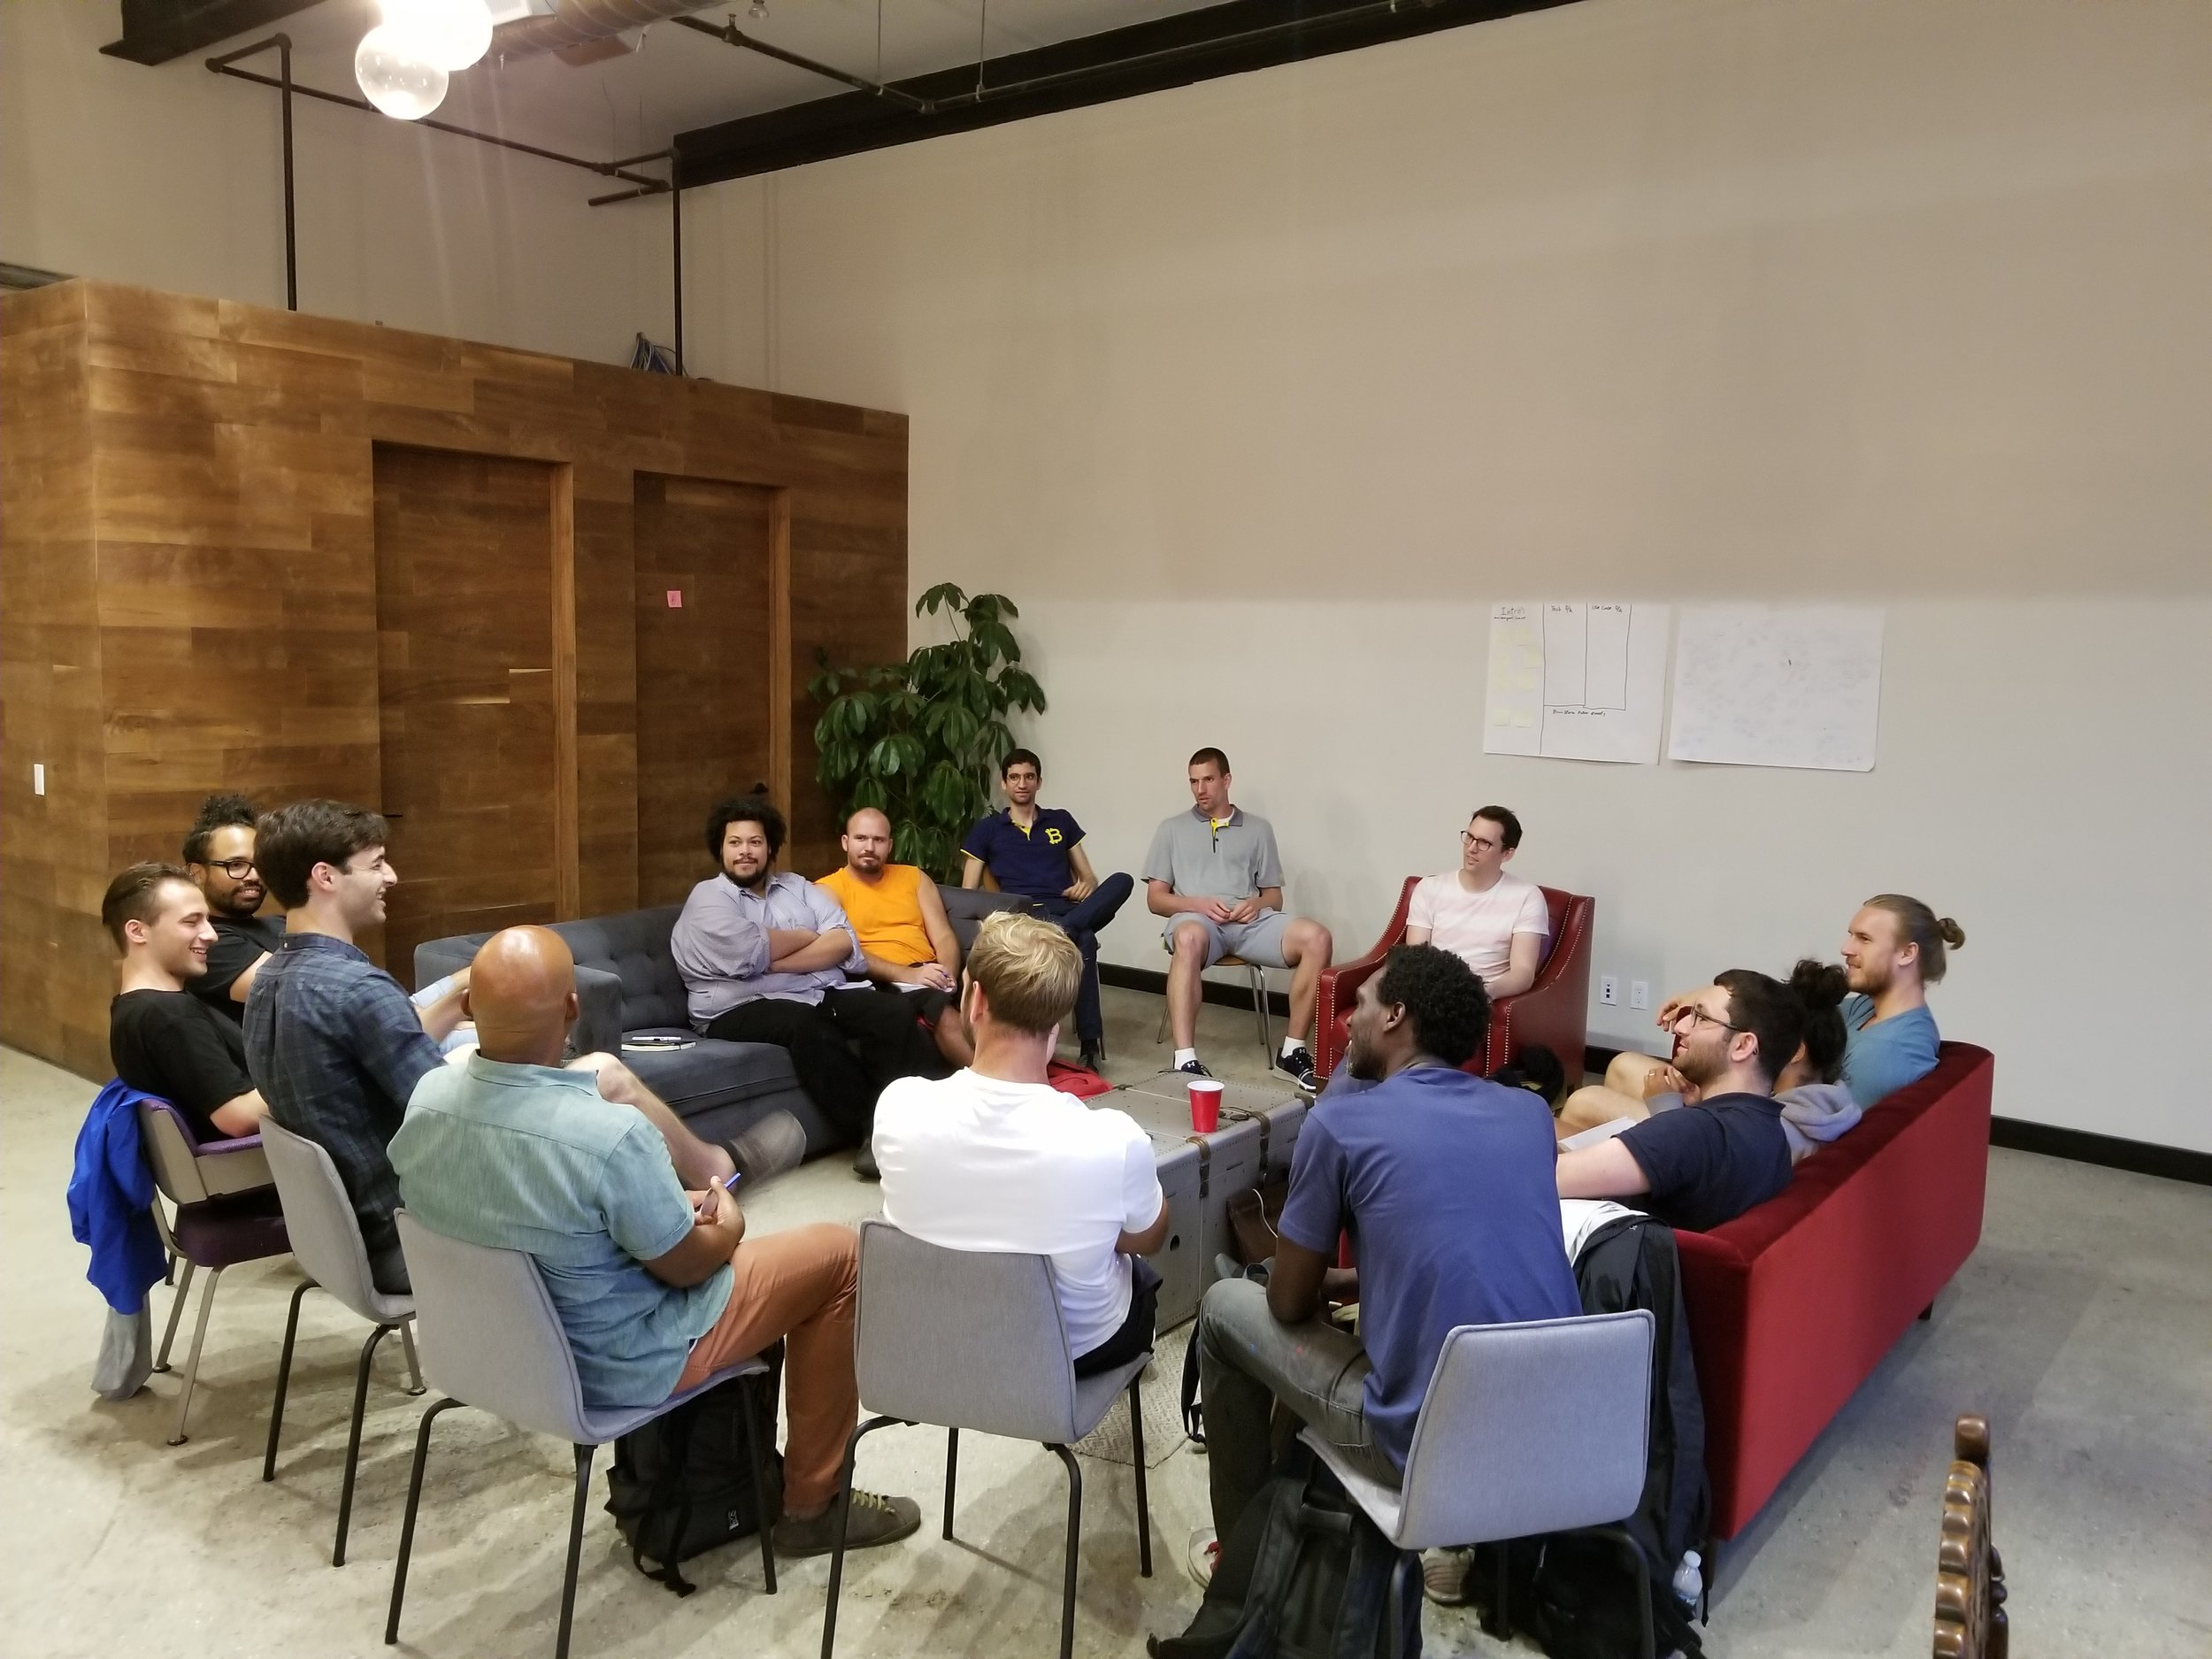 A typical Friday night meetup — this one on NFTs